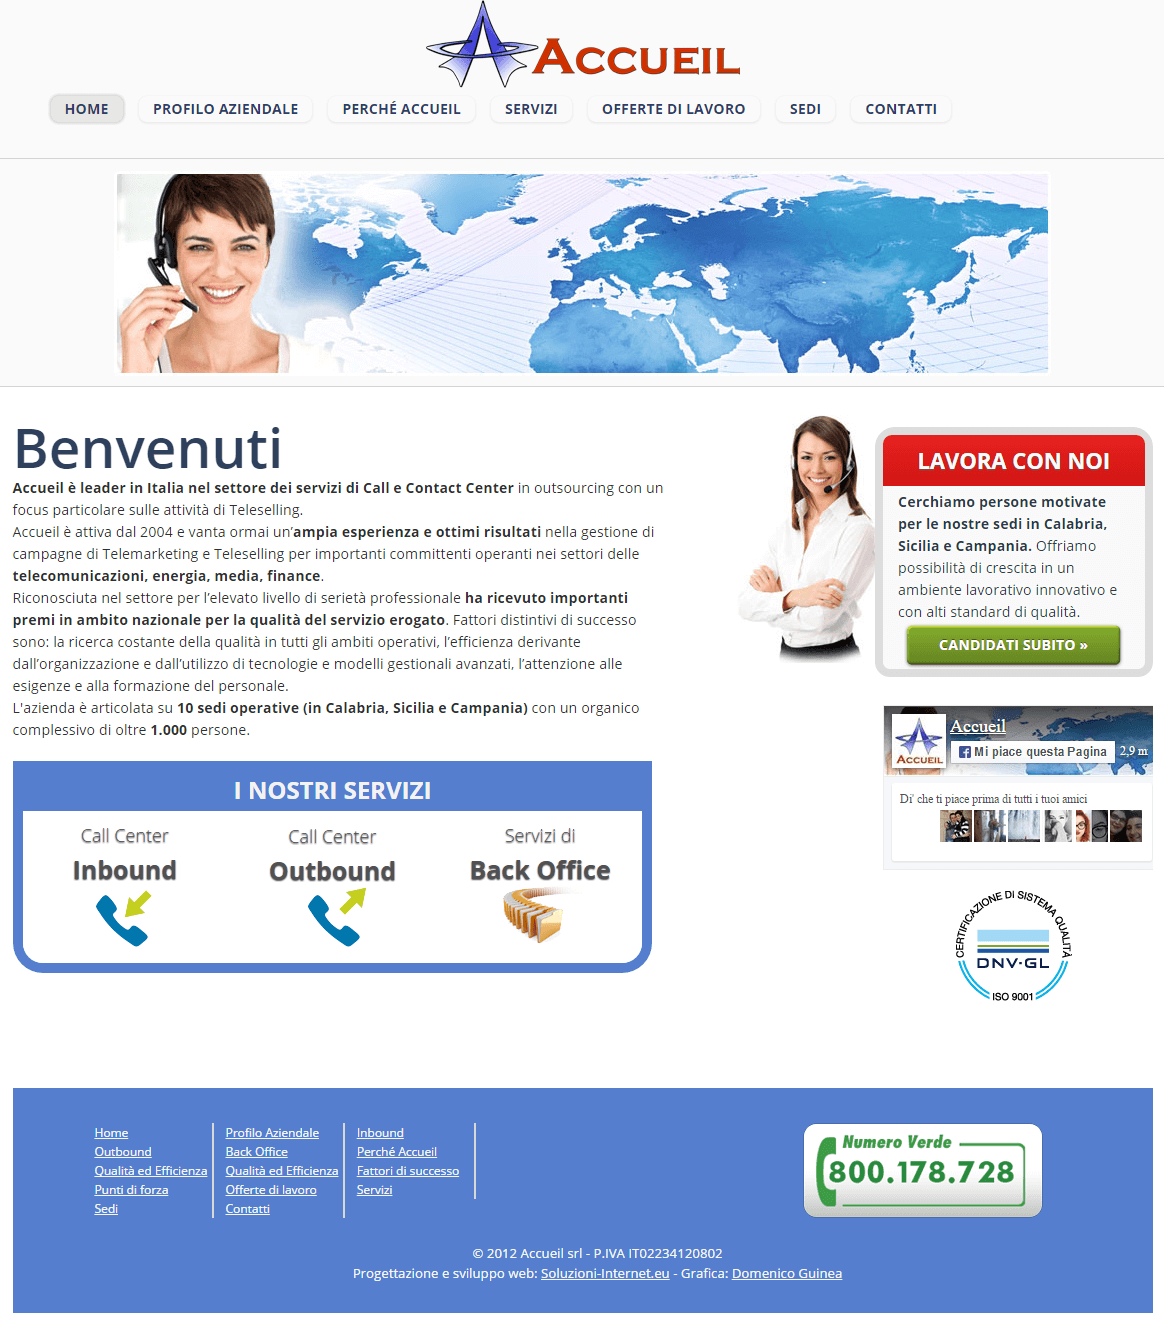 Accueil - Home Page